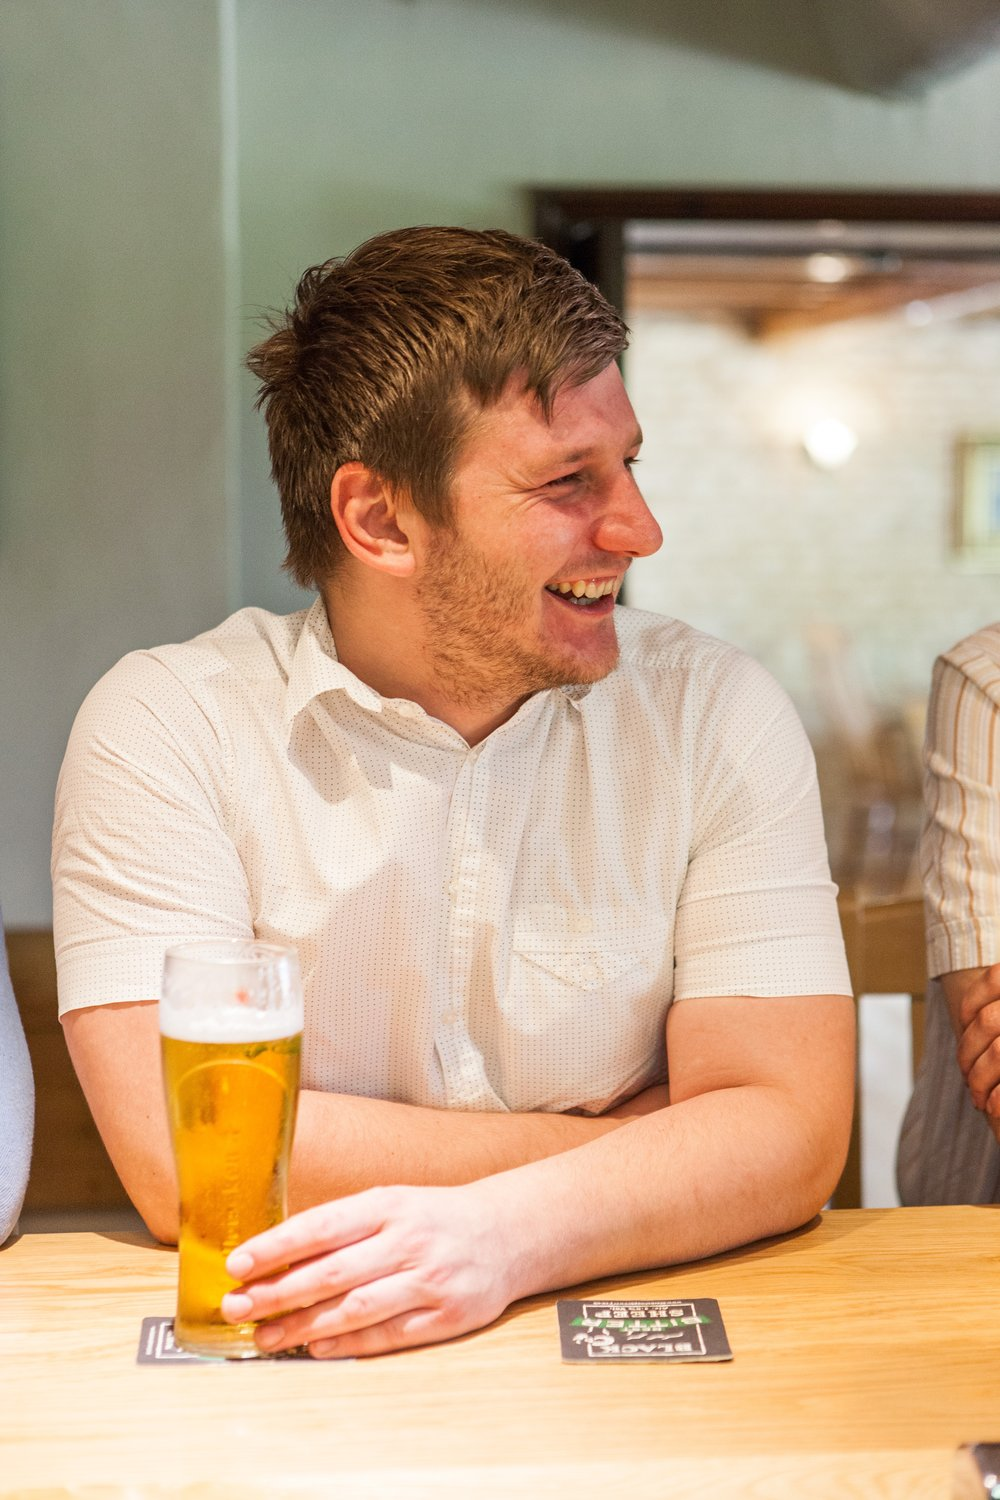 leeds_commercial_events_photographer_james_arnold_jarnold_The_Woodhouse_Arms_Pub_0019.jpg